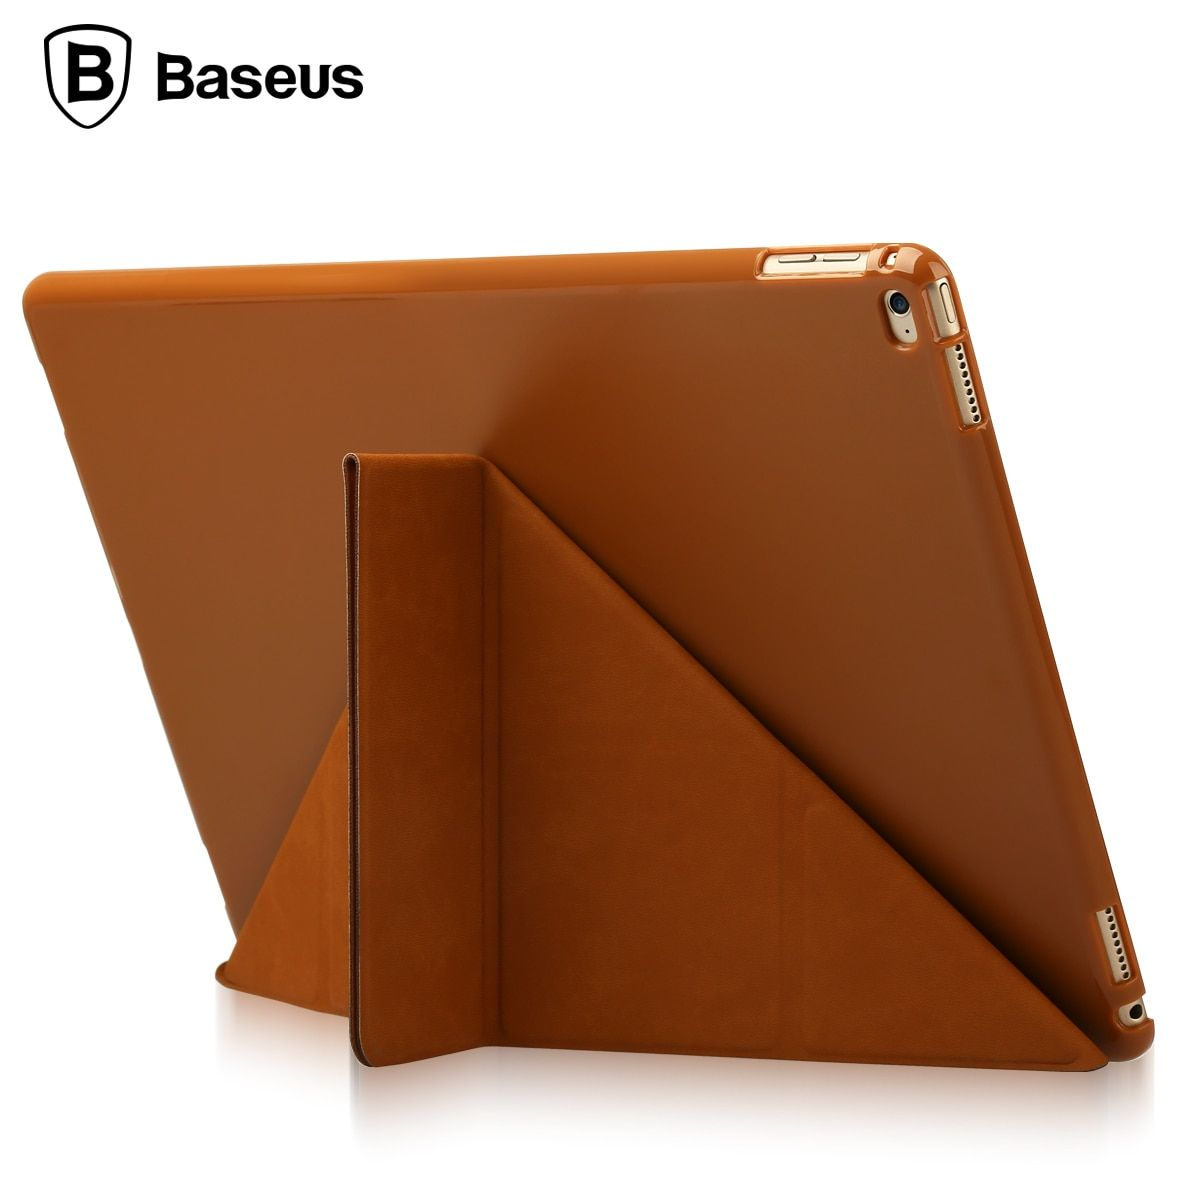 Baseus For iPad Pro 12.9 inch Case Magnetic Slim Foldable Full Body Leather Cover Case With Stand Holder For Apple iPad Pro 12.9